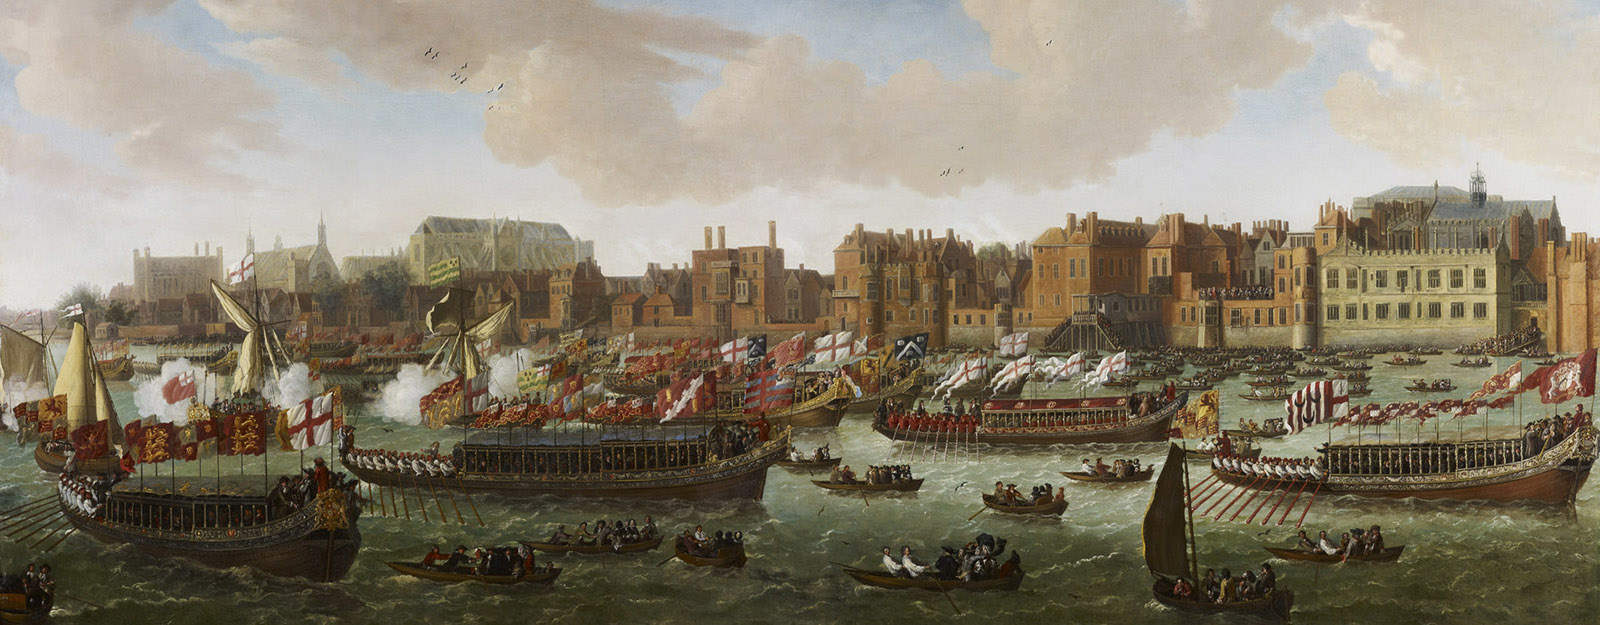 The Lord Mayor's Water-Procession on the Thames